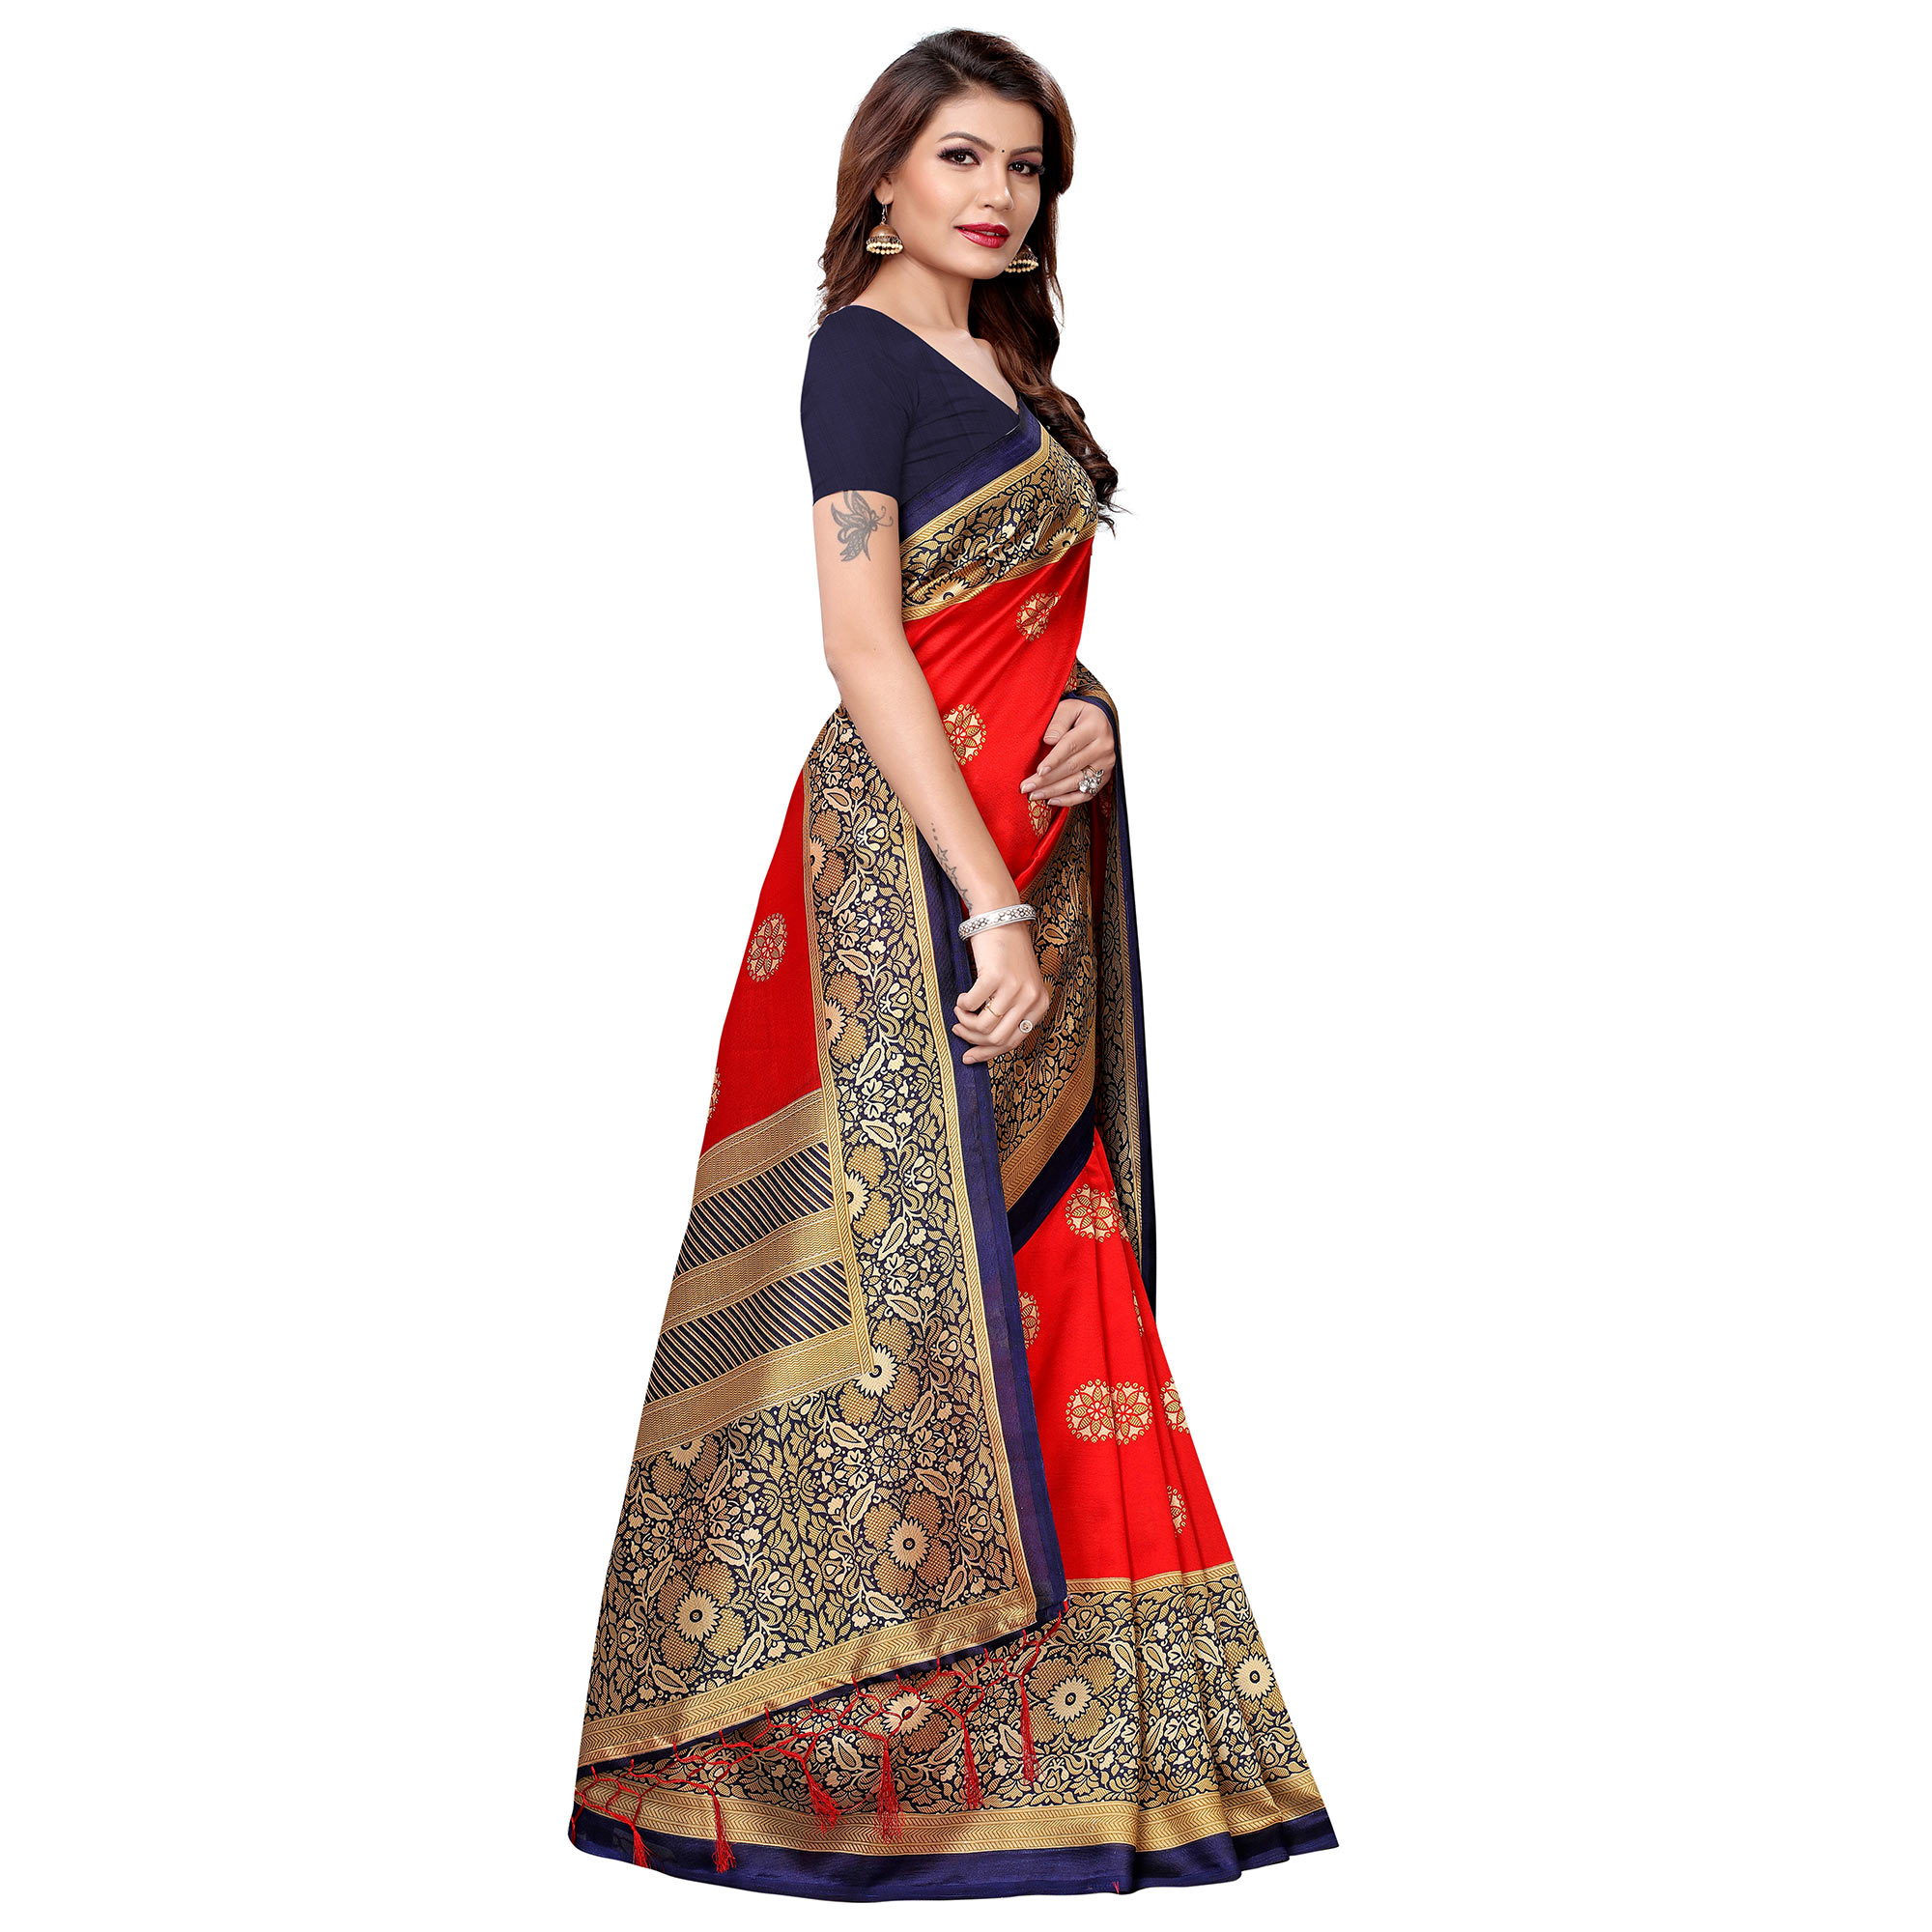 Engrossing Red Colored Festive Wear Printed Art Silk Saree